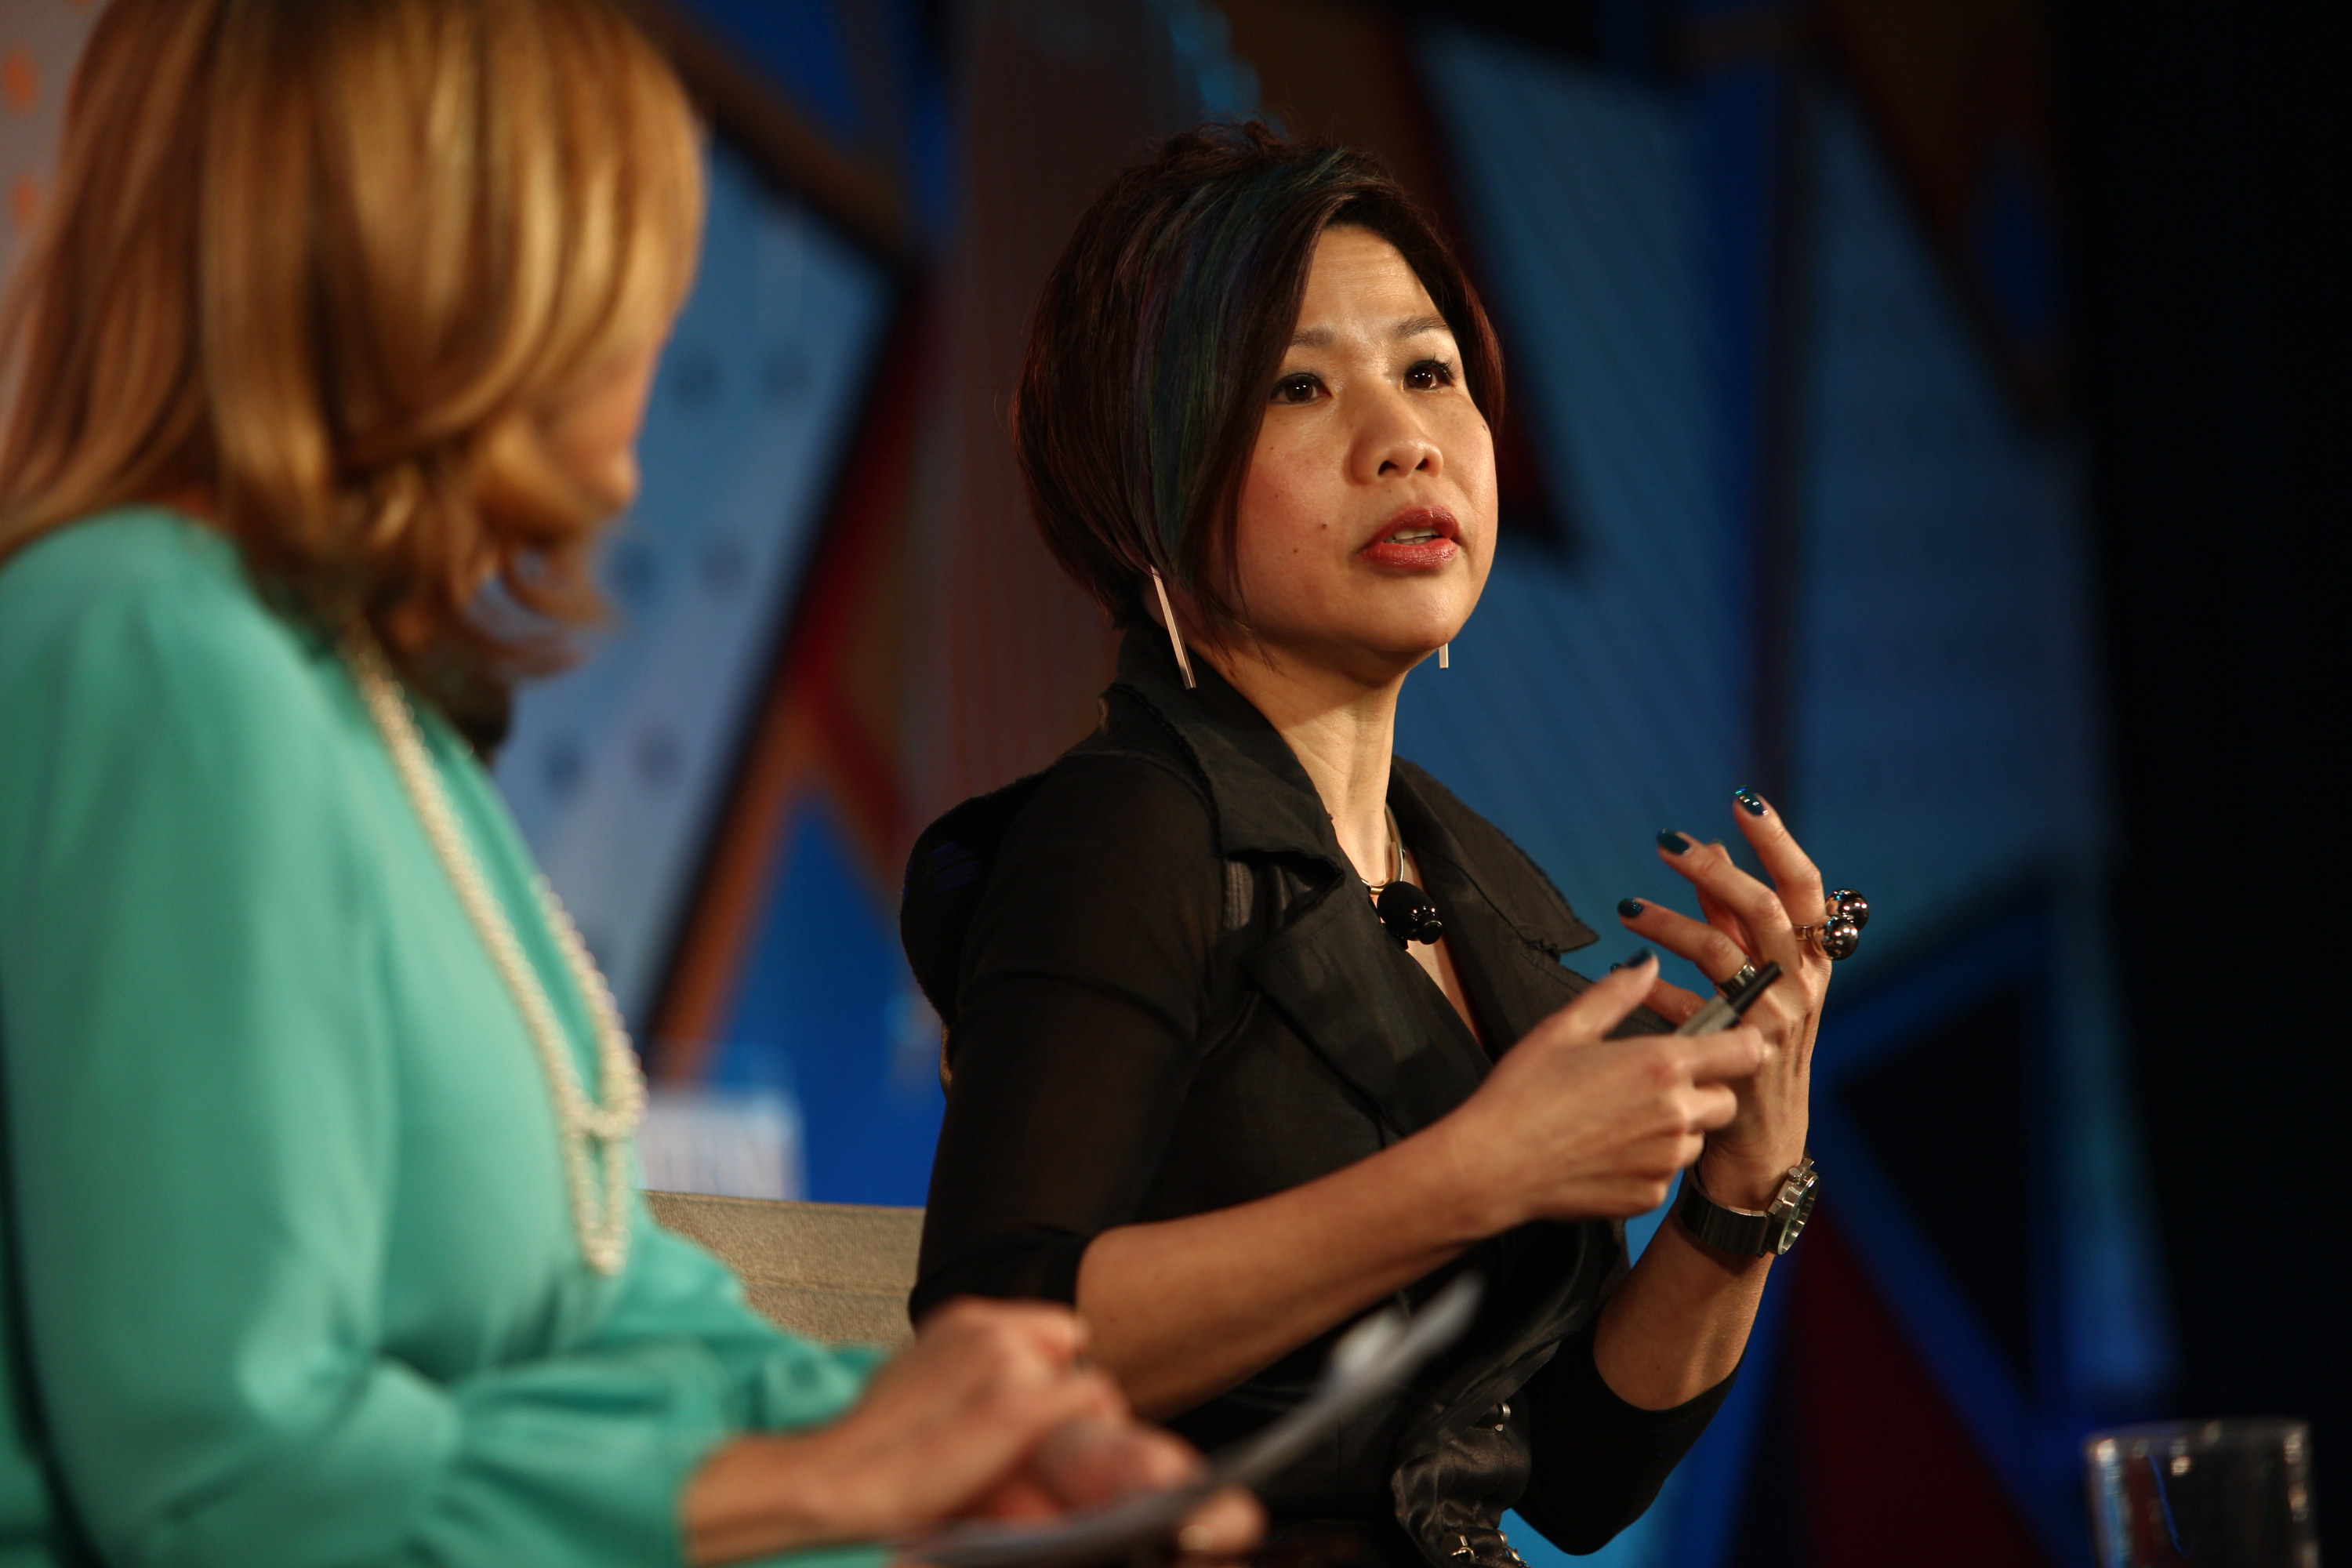 Chelsia Lau speaks at Fortune MPW in Hong Kong on March 1, 2016.